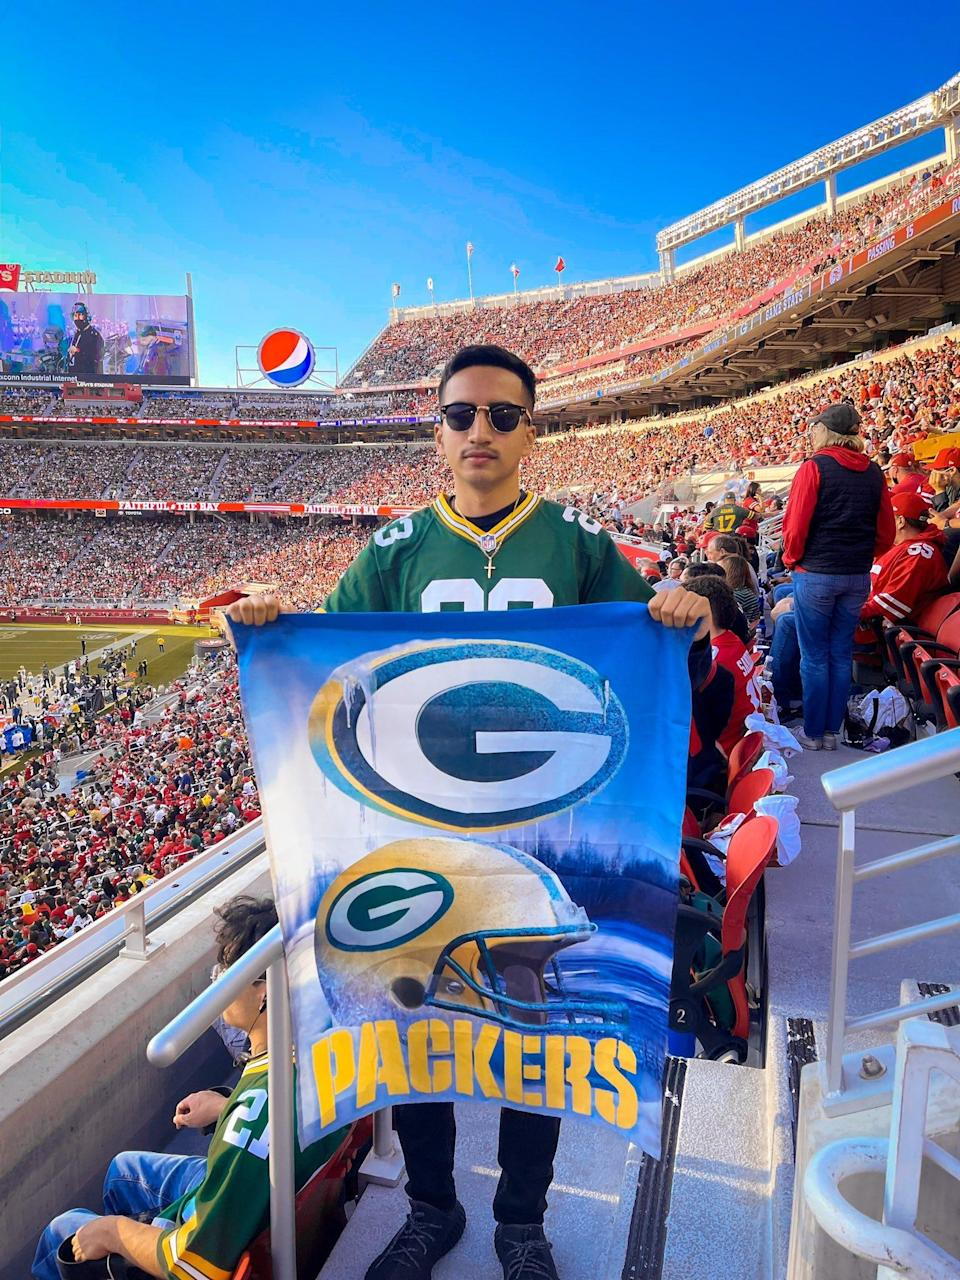 Nelson A. Liborio poses with his Packers flag at Levi's Stadium in San Francisco on Sept. 26, 2021. His post to Twitter displaying calm when the 49ers went up with 37 seconds left went viral after the Packers stormed back to win.